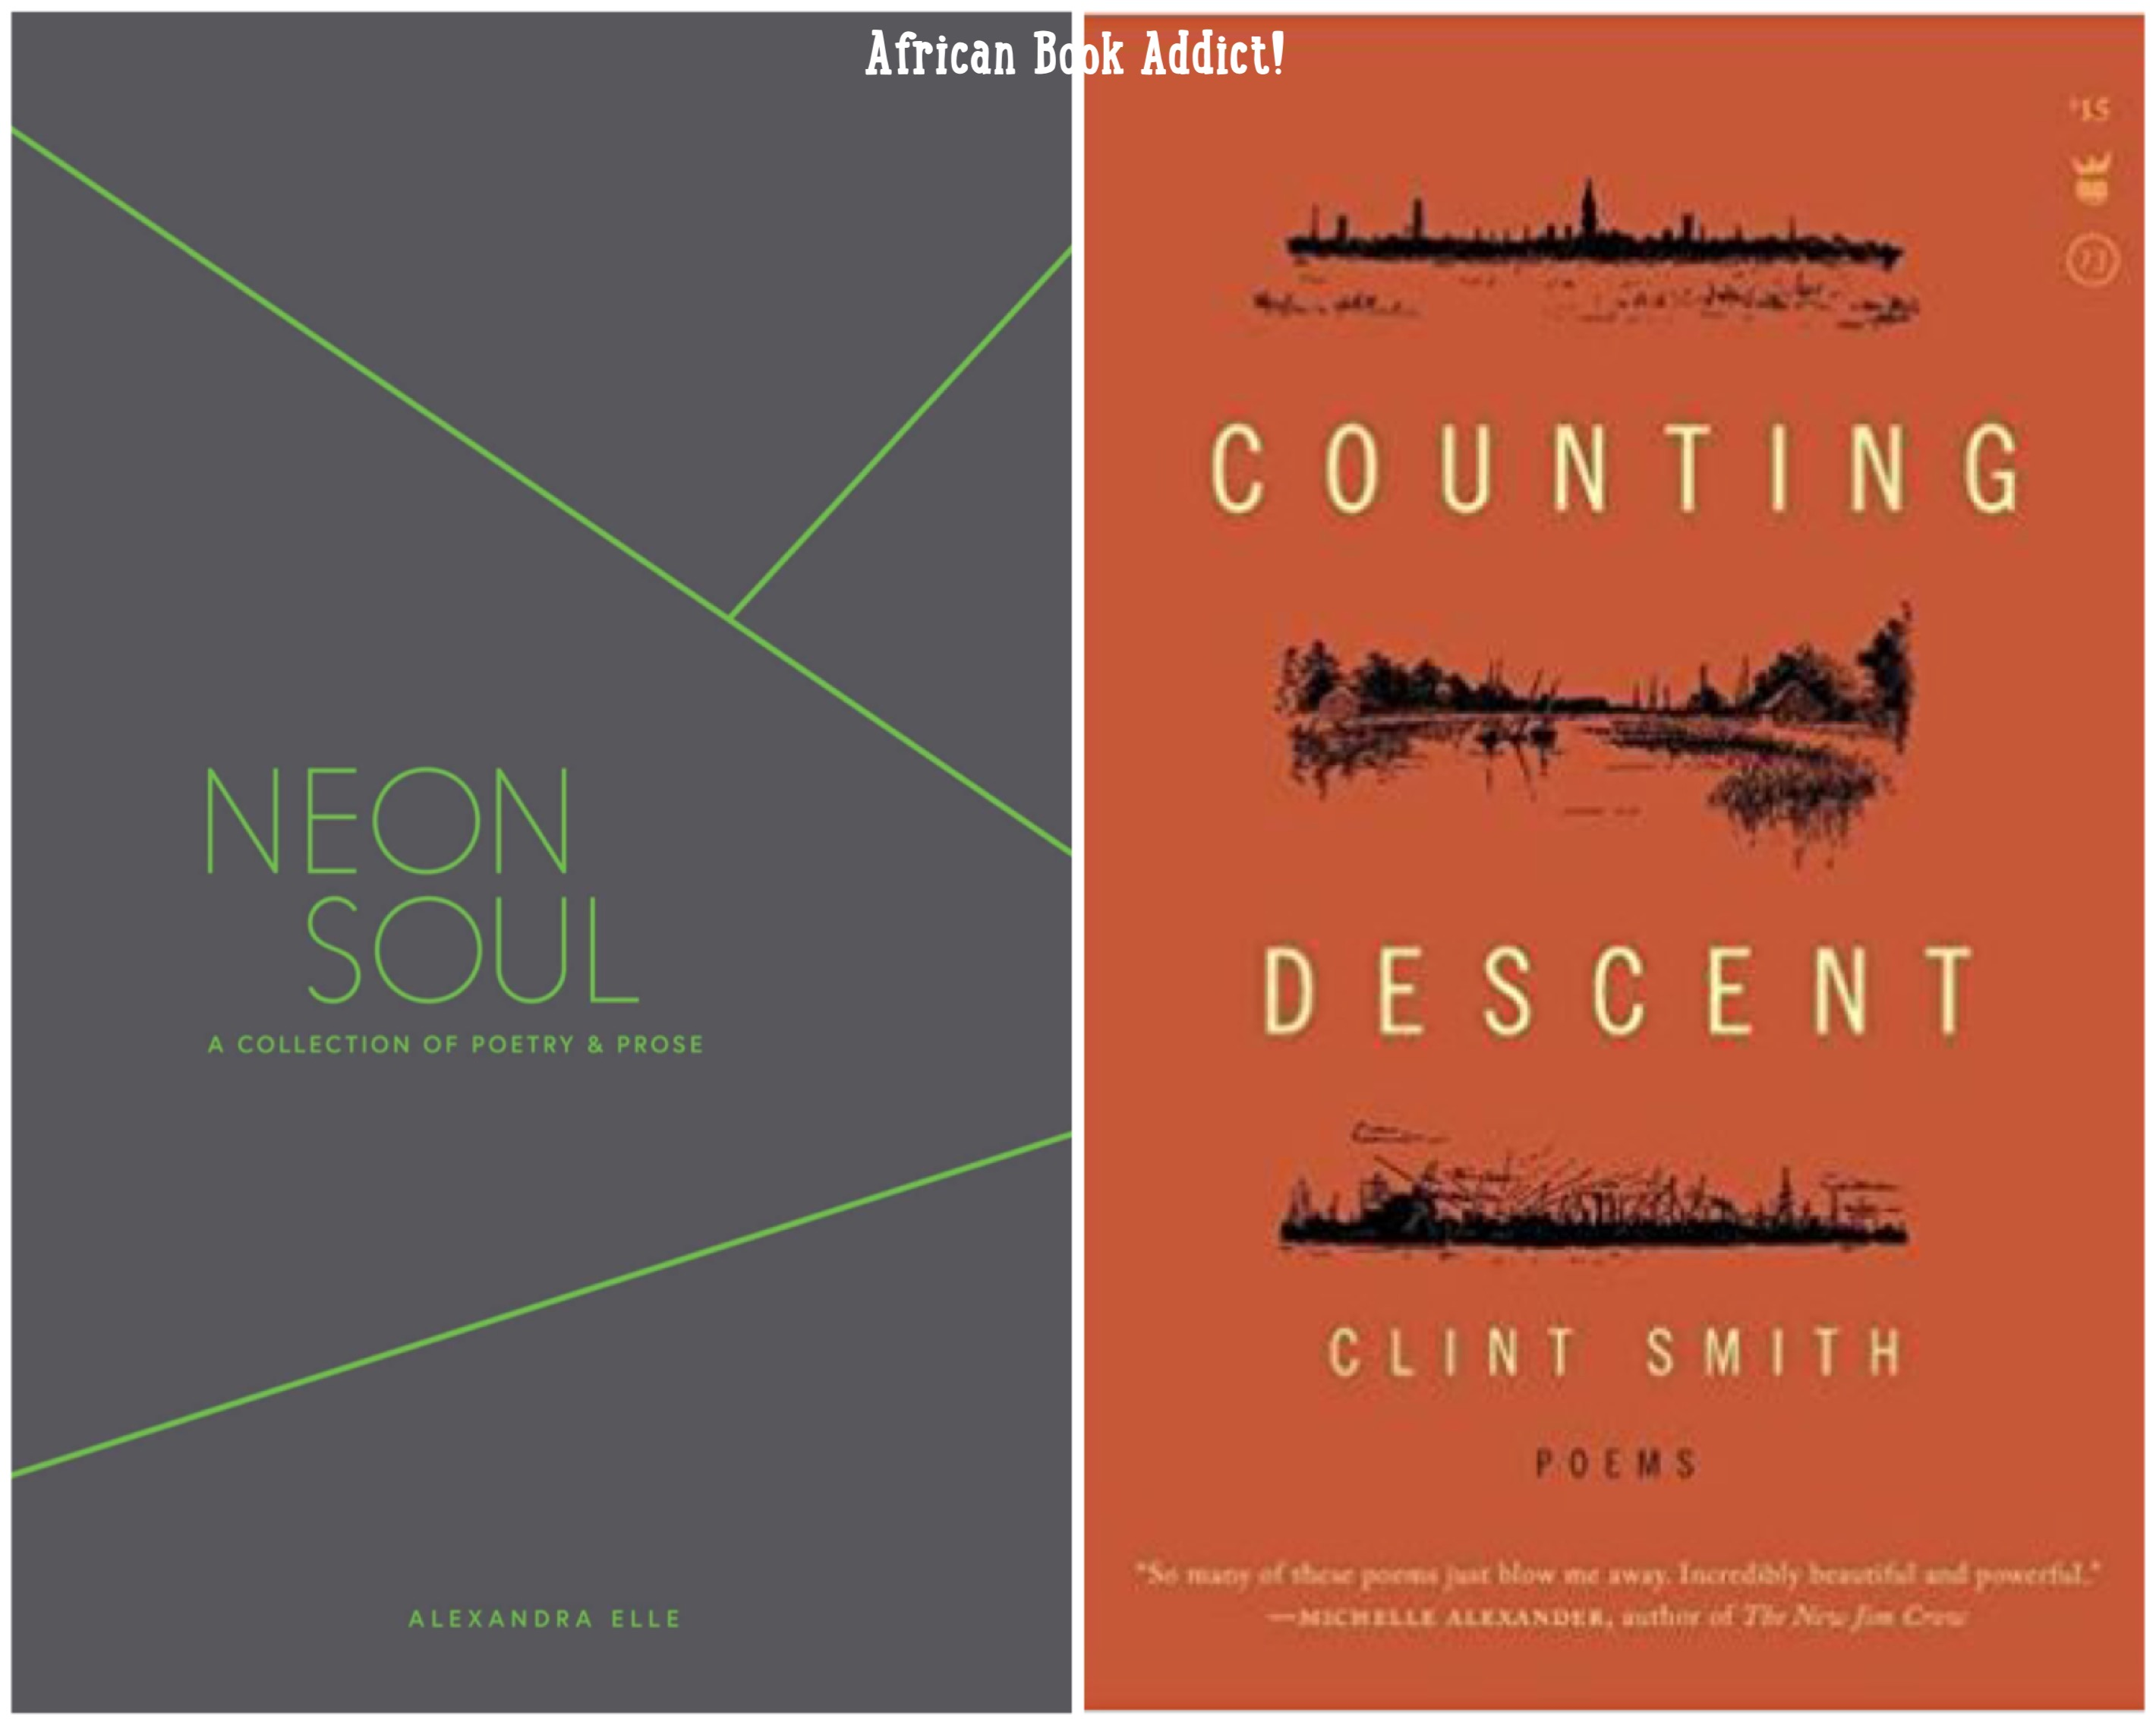 Home dear mr kourouma - Poetry Neon Soul Counting Descent Hey Everyone At The End Of My Review For Salt By Nayyirah Waheed I Listed A Bunch Of Contemporary Poets And